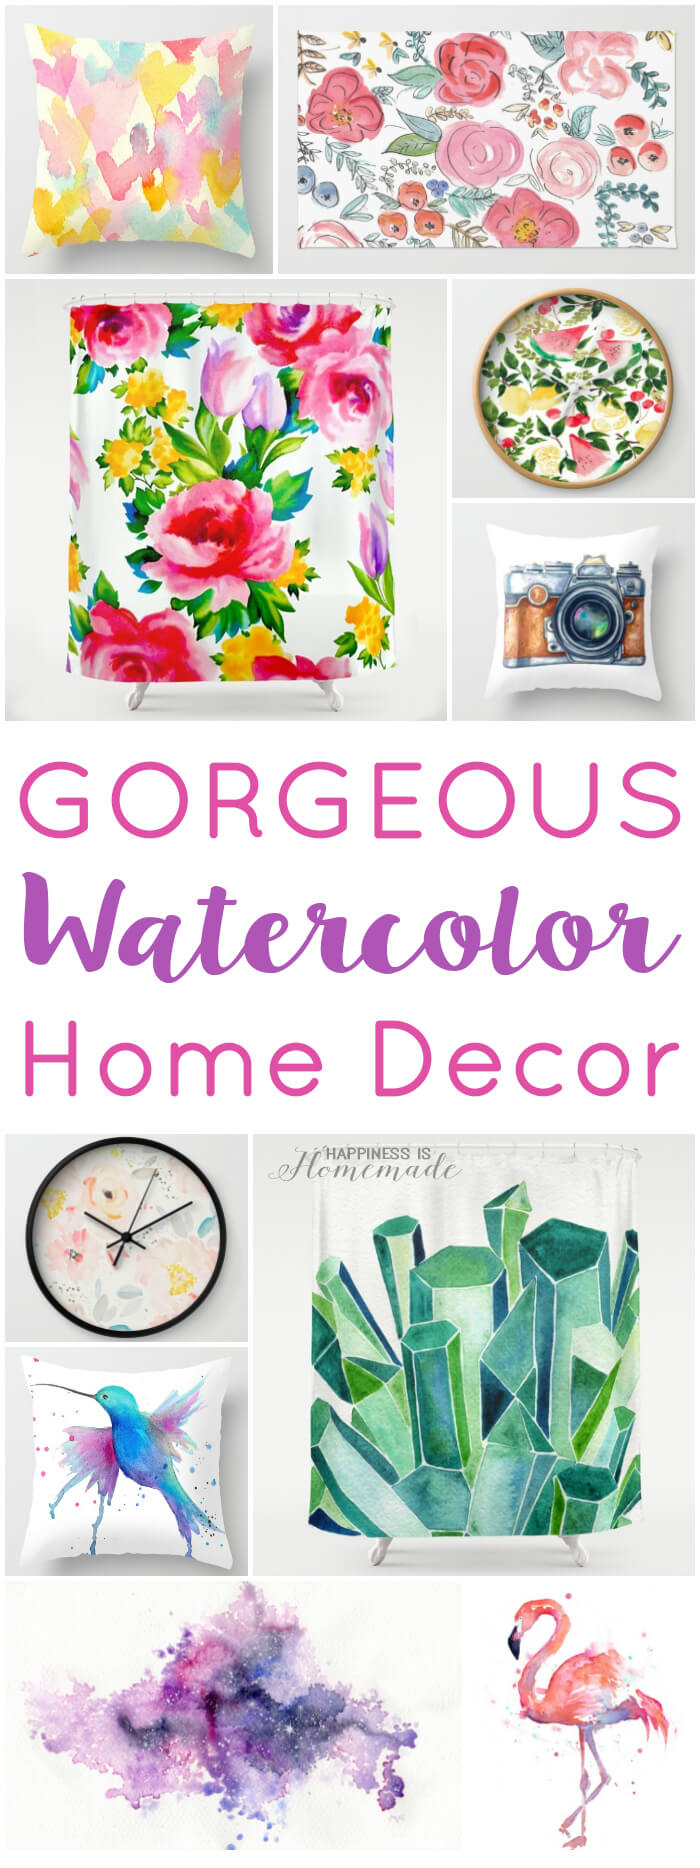 Gorgeous Watercolor Home Decor - Pillows Shower Curtains Rugs Art Prints